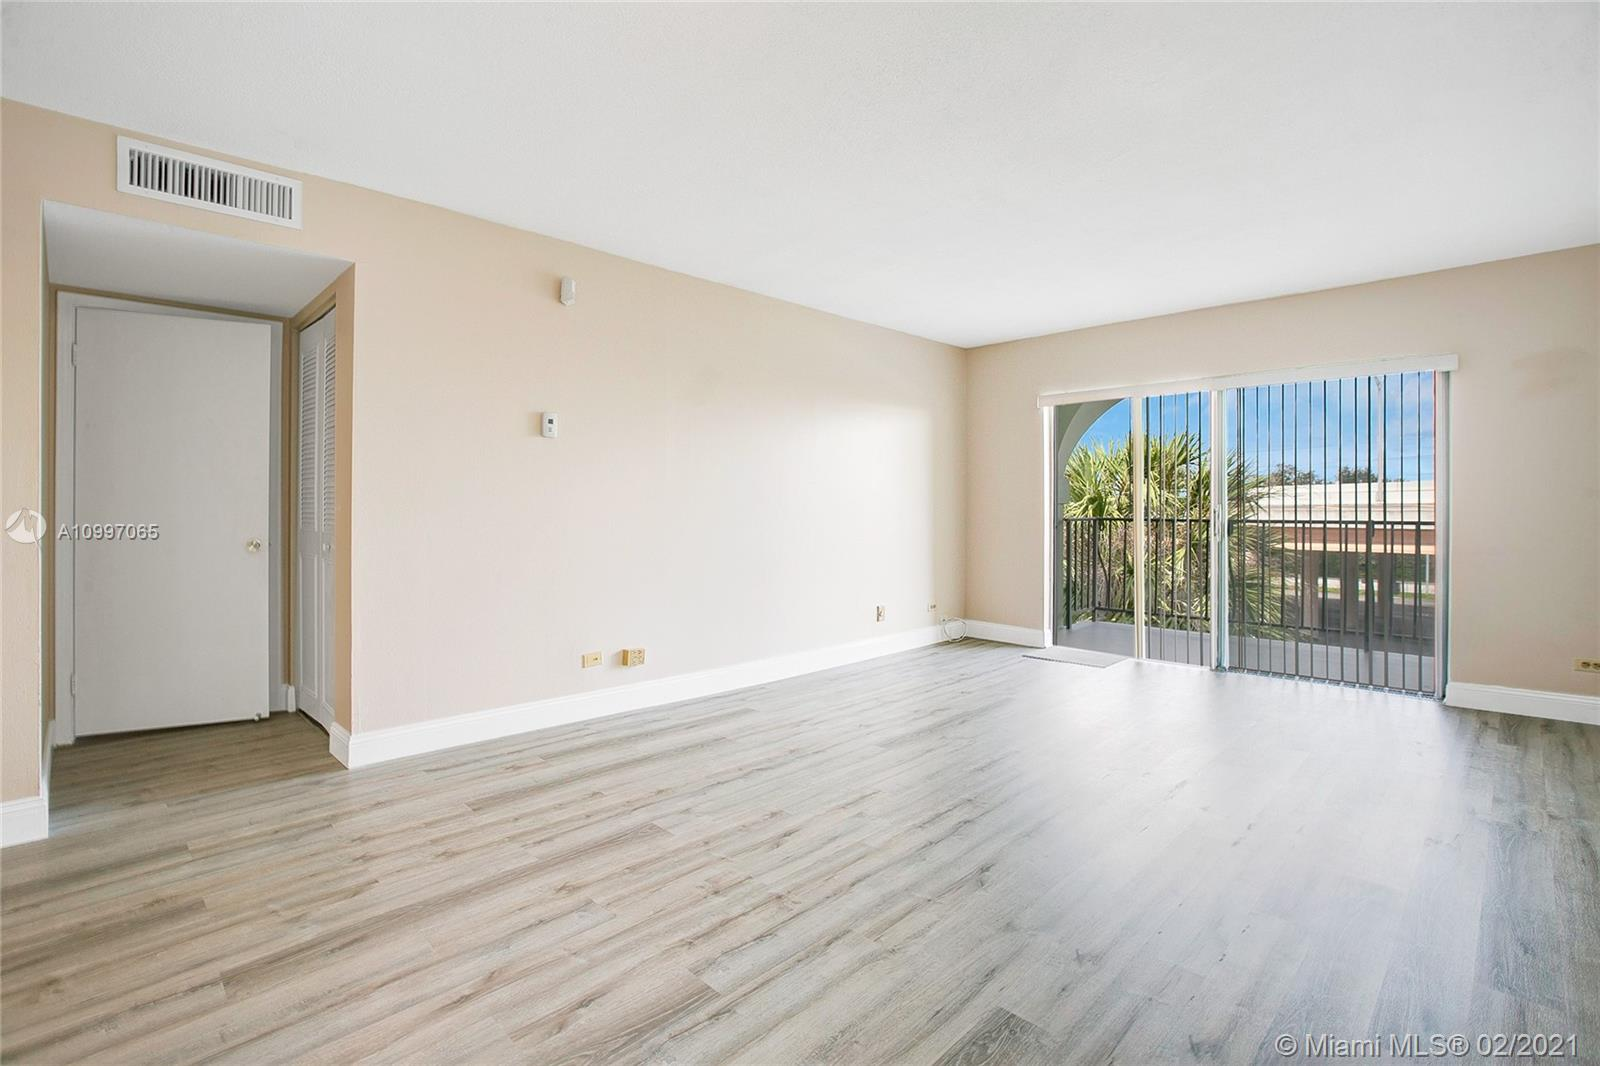 Spacious apartment in a quiet neighborhood of new construction condo buildings. Ideally located close to UM, South Miami, Coral Gables & Pinecrest. Walk to Metrorail and world-class shopping, dining & entertainment at Dadeland Mall. Light-filled, open living spaces w/ large covered balcony. Well maintained-(recently painted + new laminate flooring ), 1BR/1.5BA + 3 walk-in closets. Secure, gated building is currently undergoing renovations and offers a pool, assigned parking & clubhouse room. Additional details: water, cable is included. NO PETS per association by-laws.